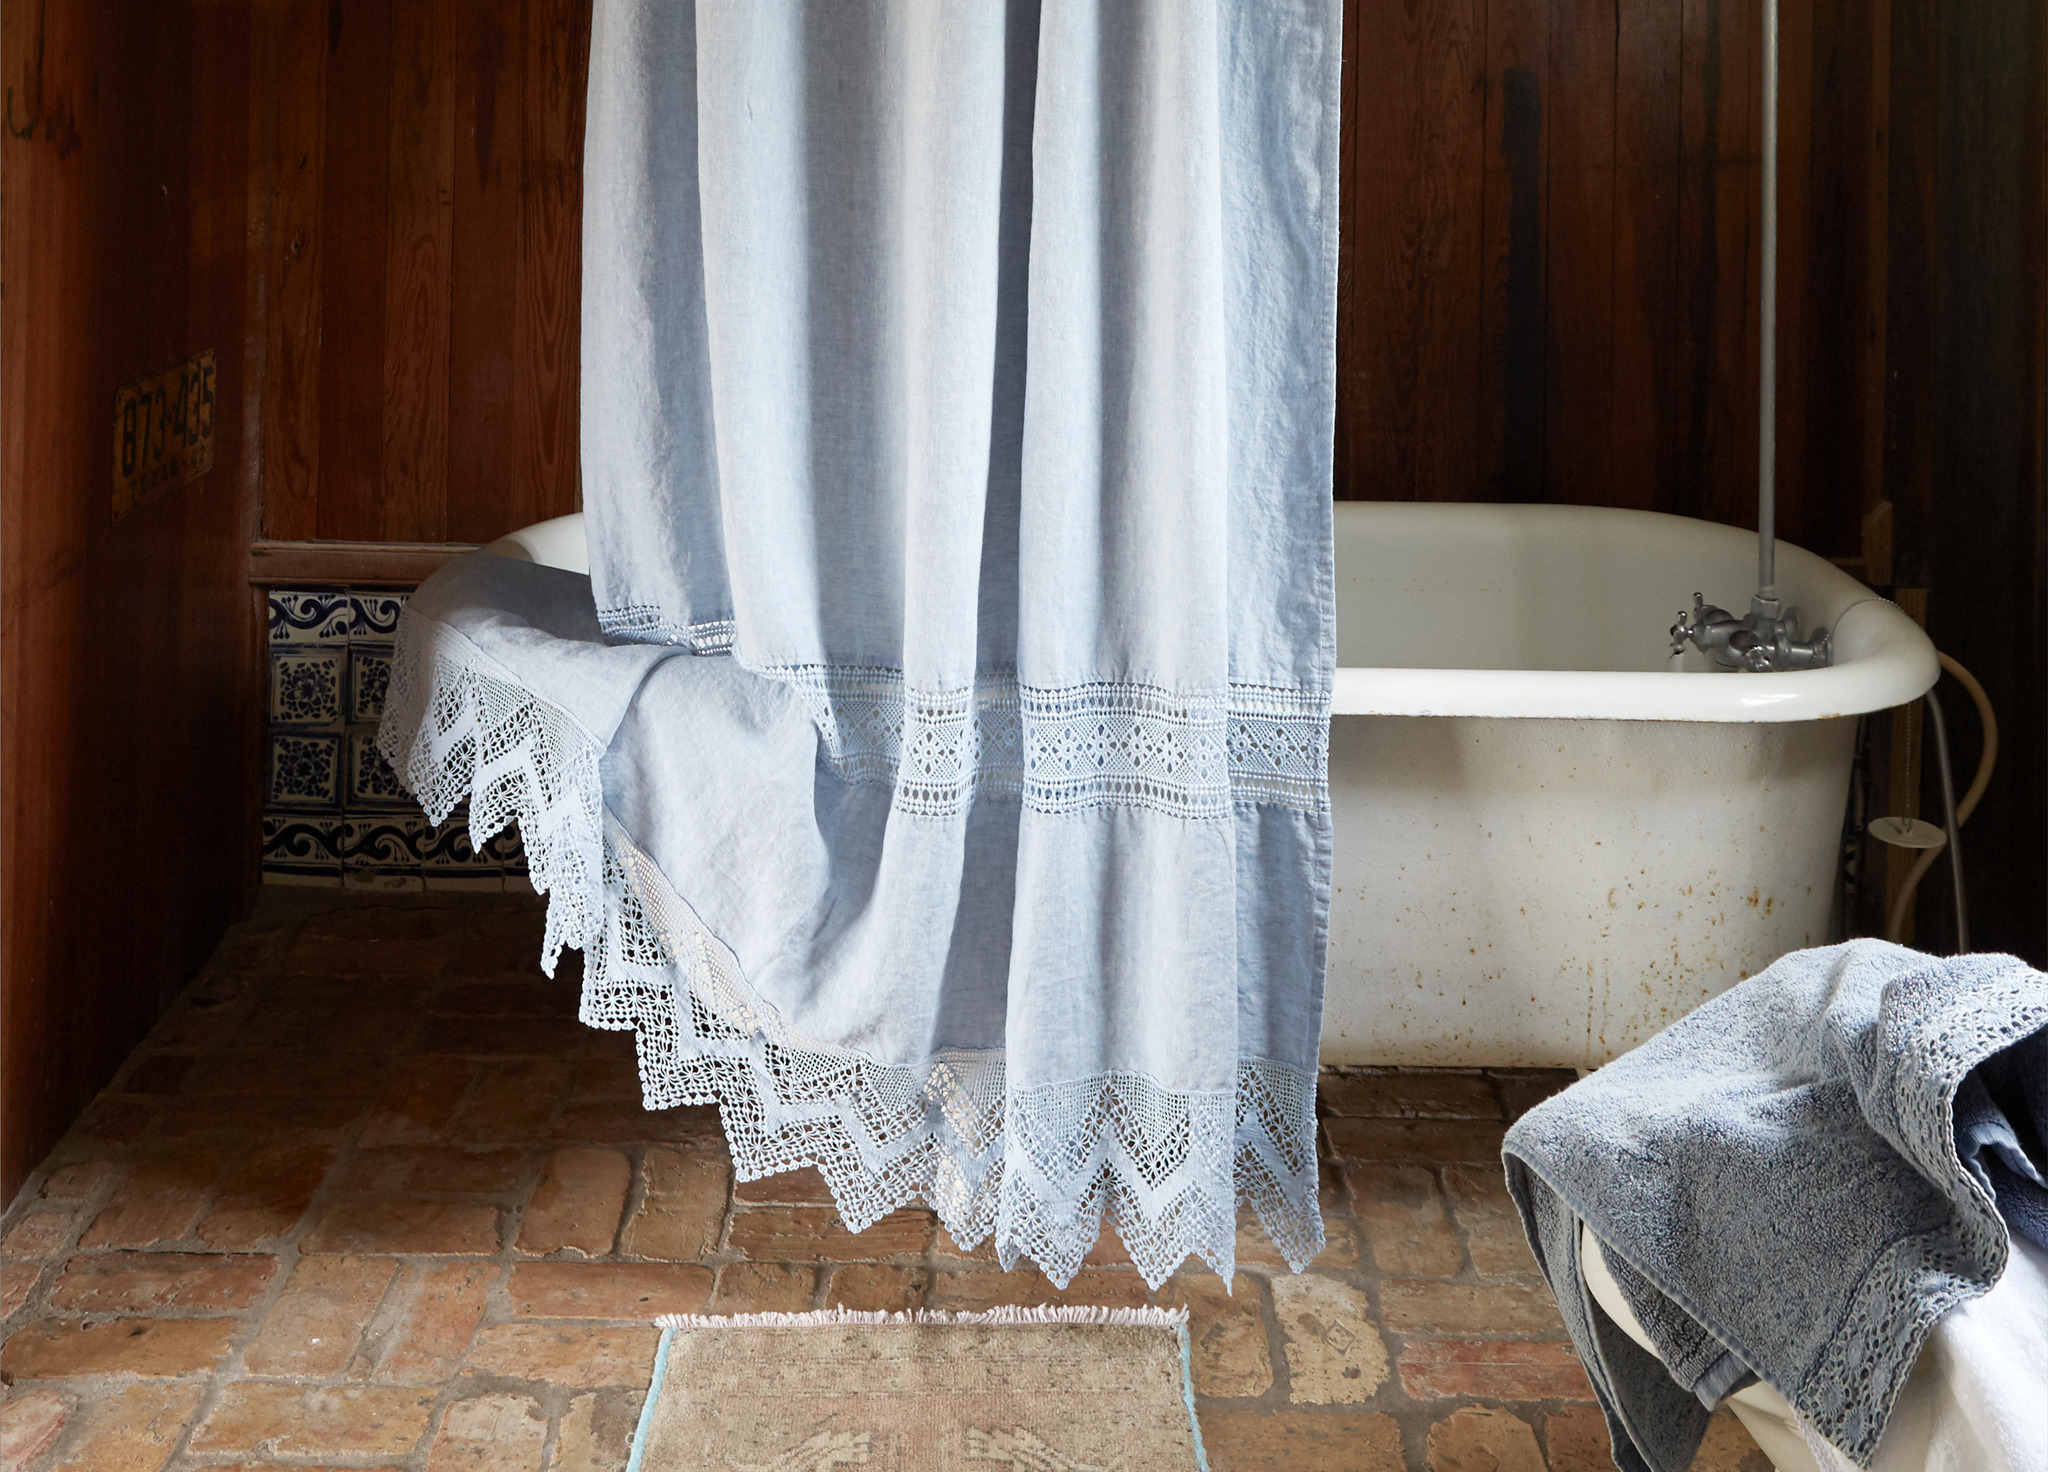 Shabby Chic Decor finds await you in this inspiring lineup of interior design inspiration. #shabbychic #interiordesignideas #decoratingideas #rachelashwell #bathroomdecor #clawfoottub #vintagestyle